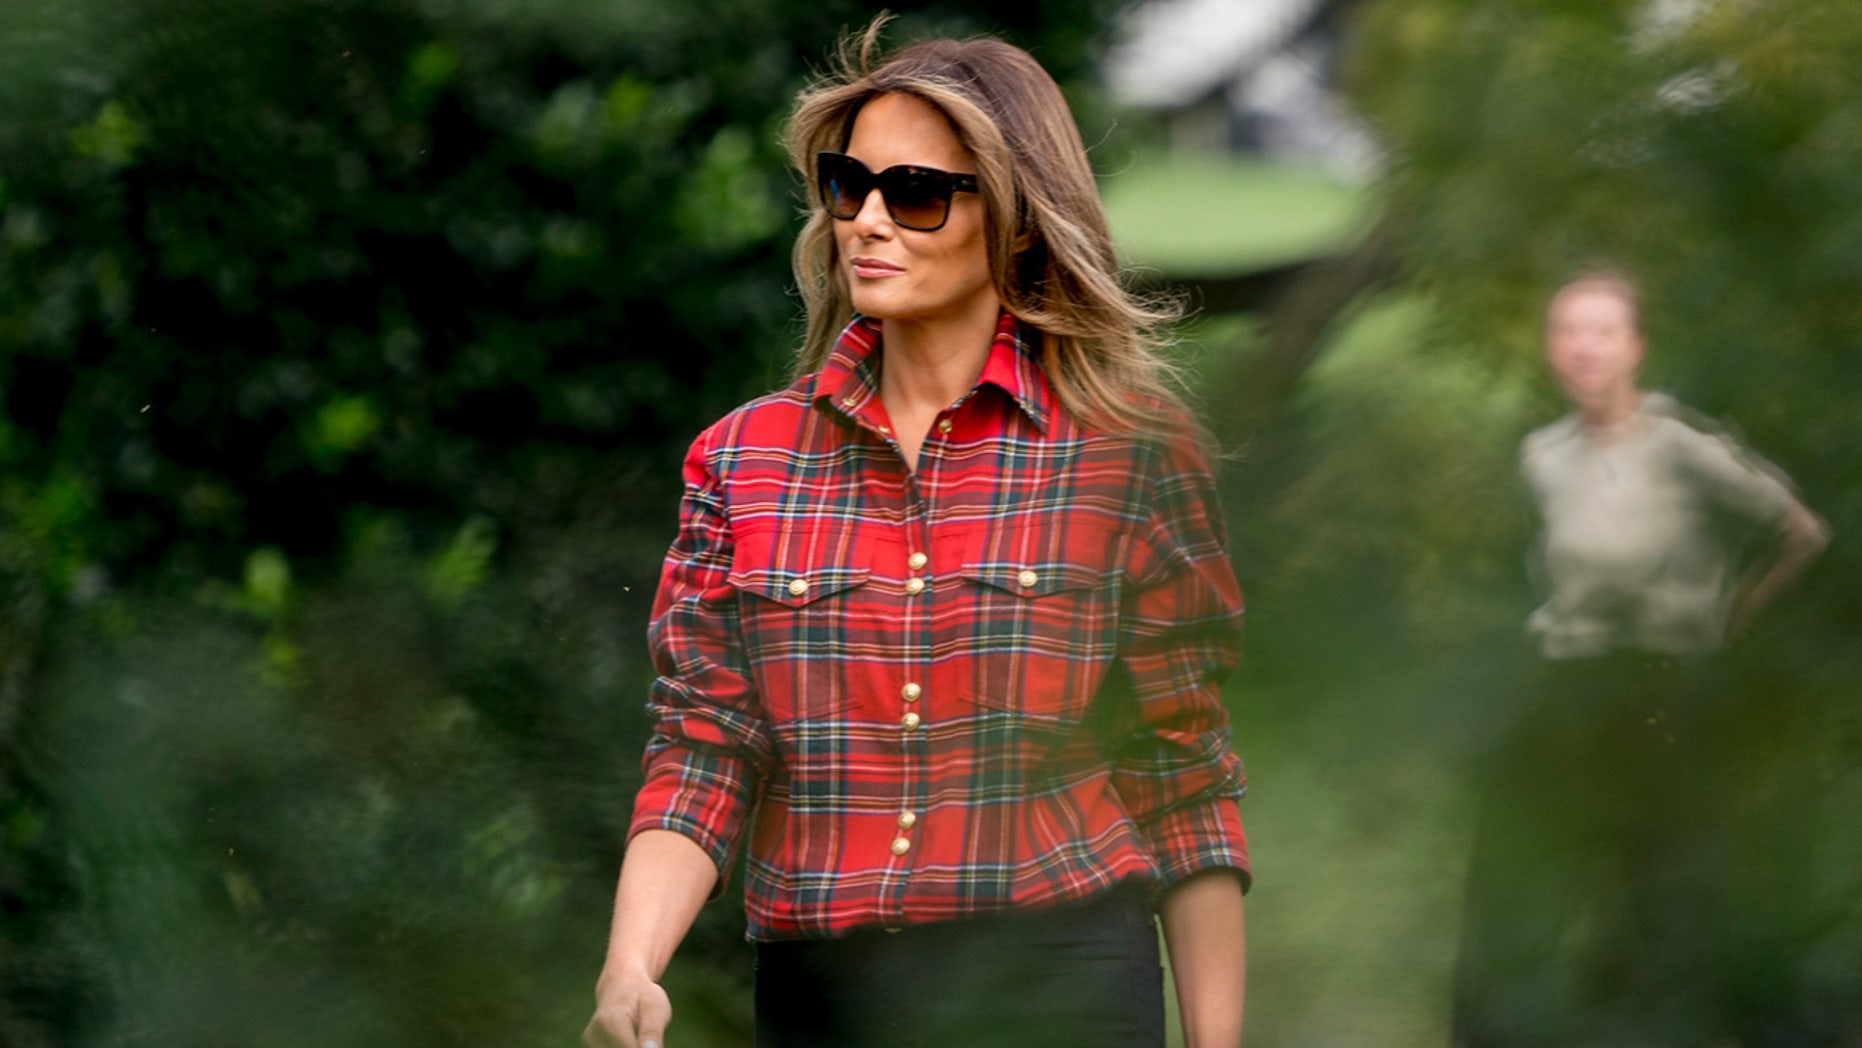 Melania Trump is set to take her biggest step yet as first lady. She's leading a U.S. delegation to a sporting event in Toronto for wounded service members, her first solo trip outside of the U.S. to represent her adopted country without President Donald Trump by her side.